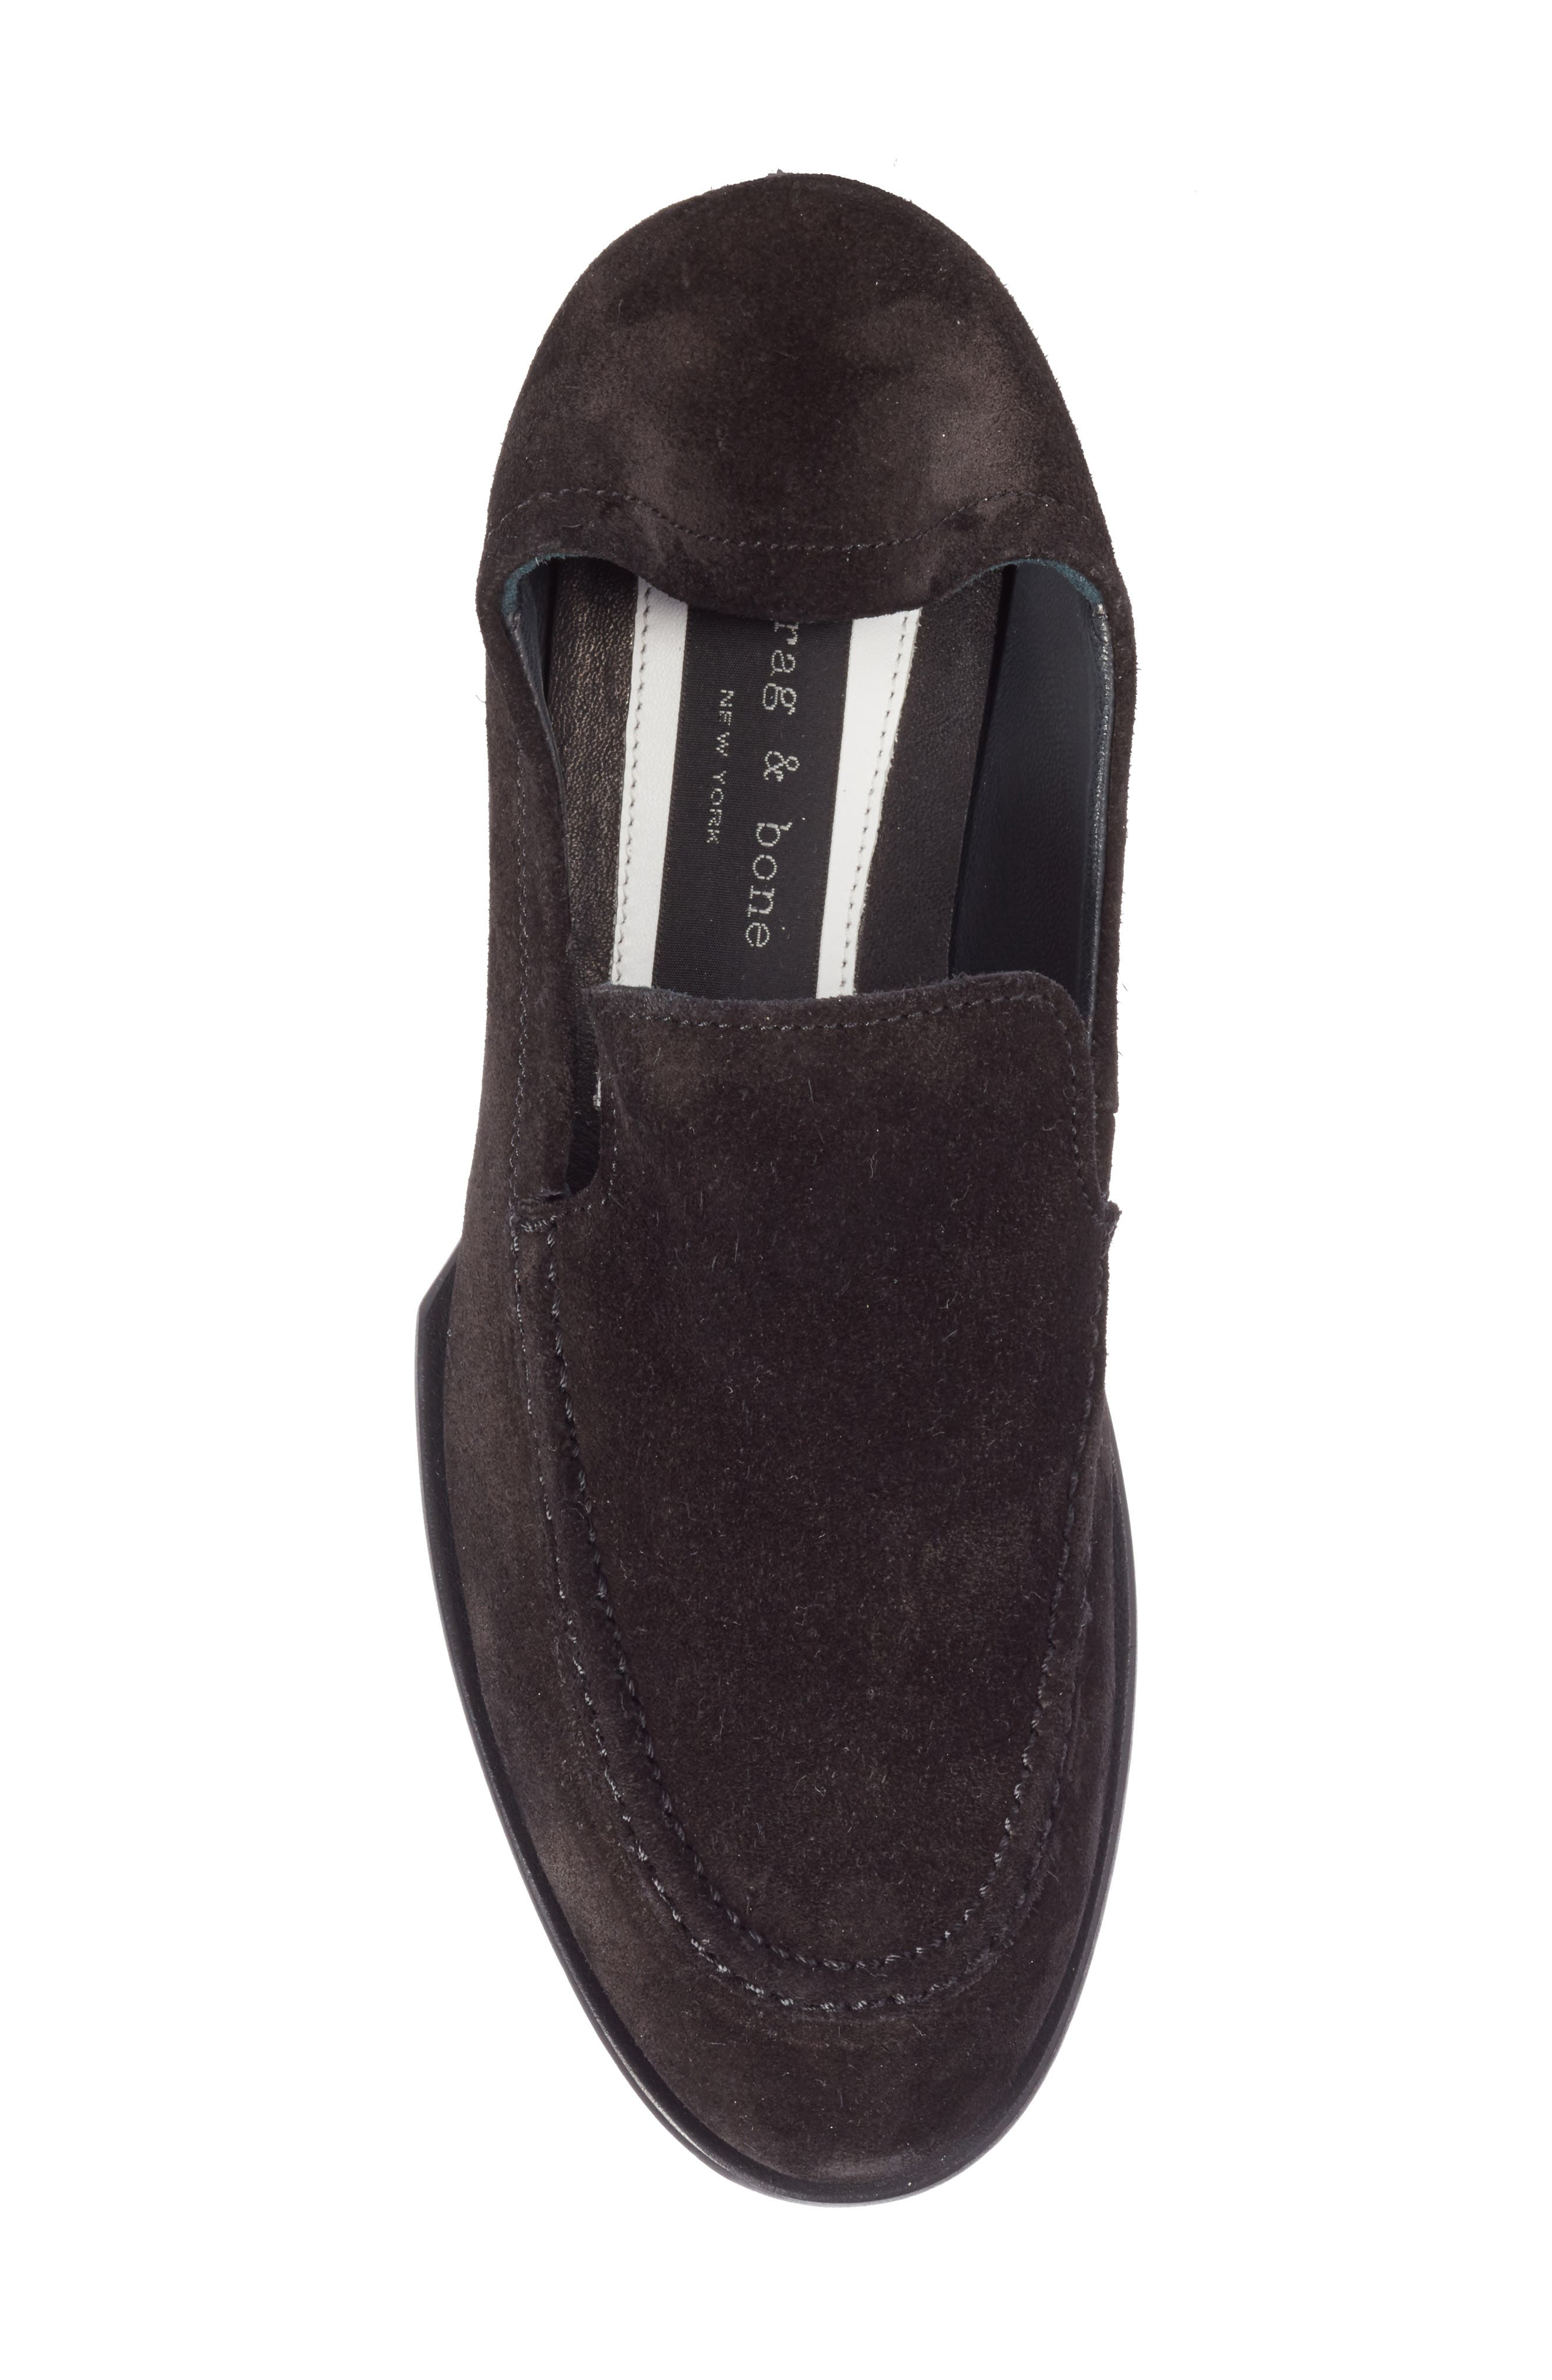 Alix Convertible Loafer,                             Alternate thumbnail 6, color,                             008